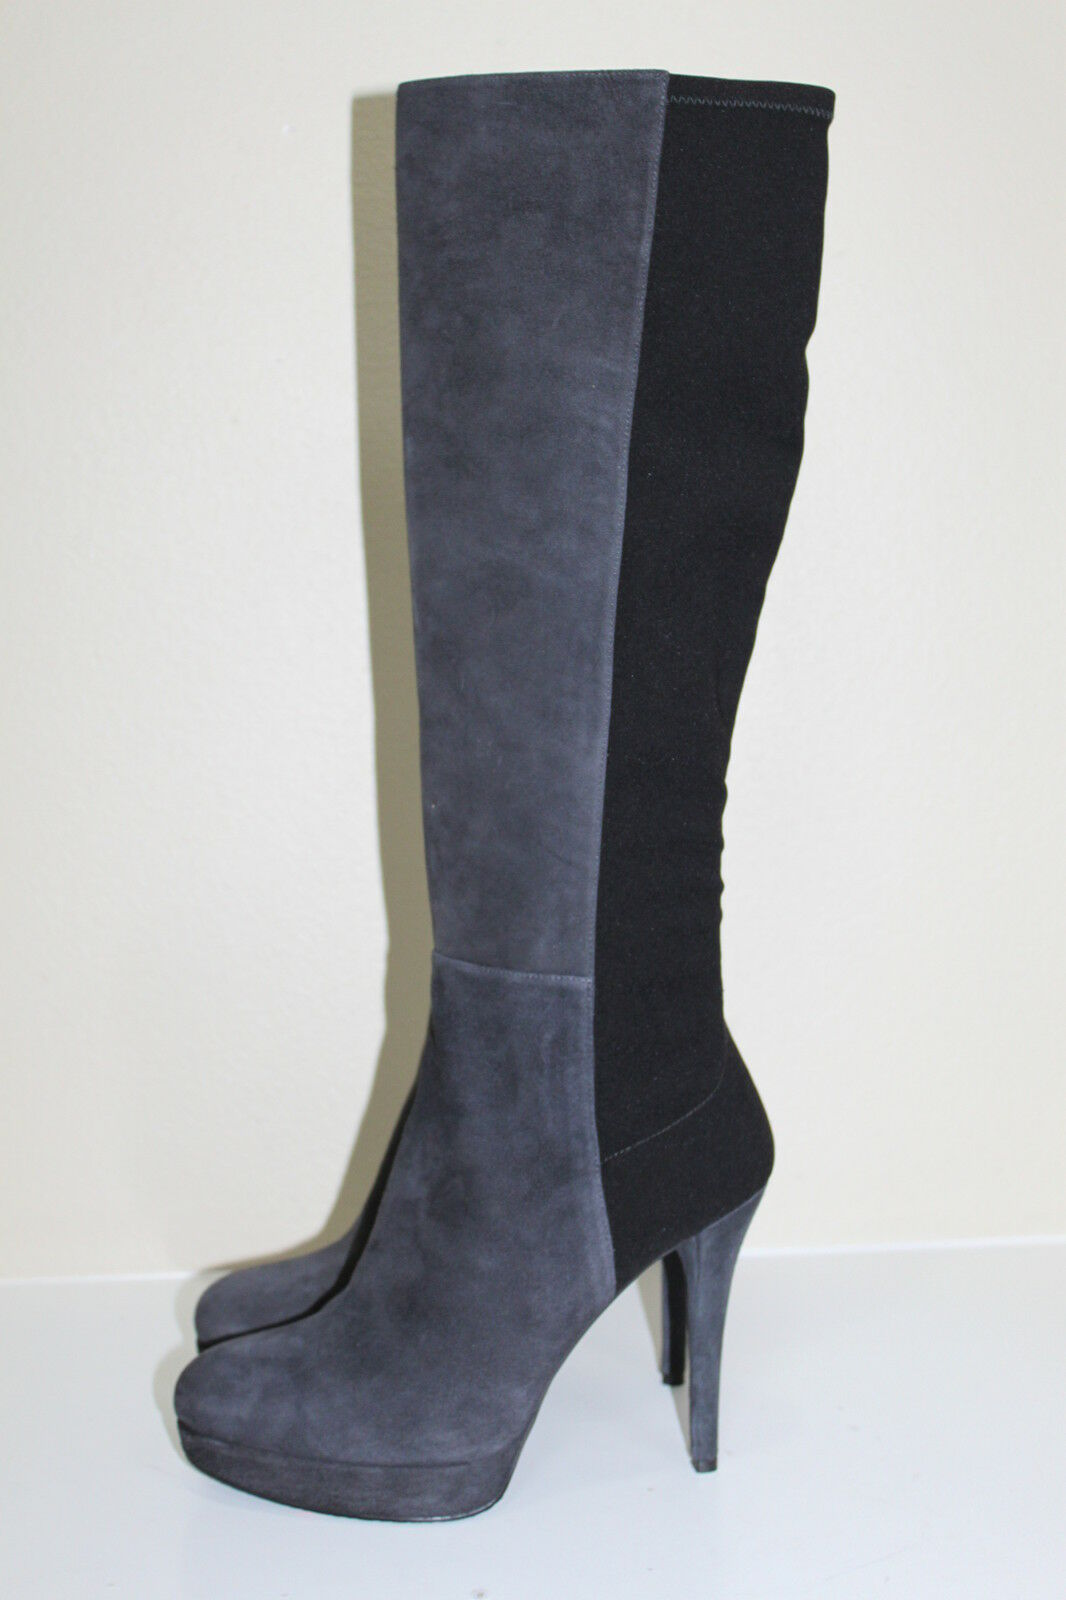 Stuart Weitzman Skyline Platform Grey & Black Suede Boot Heel shoes sz  9.5 M